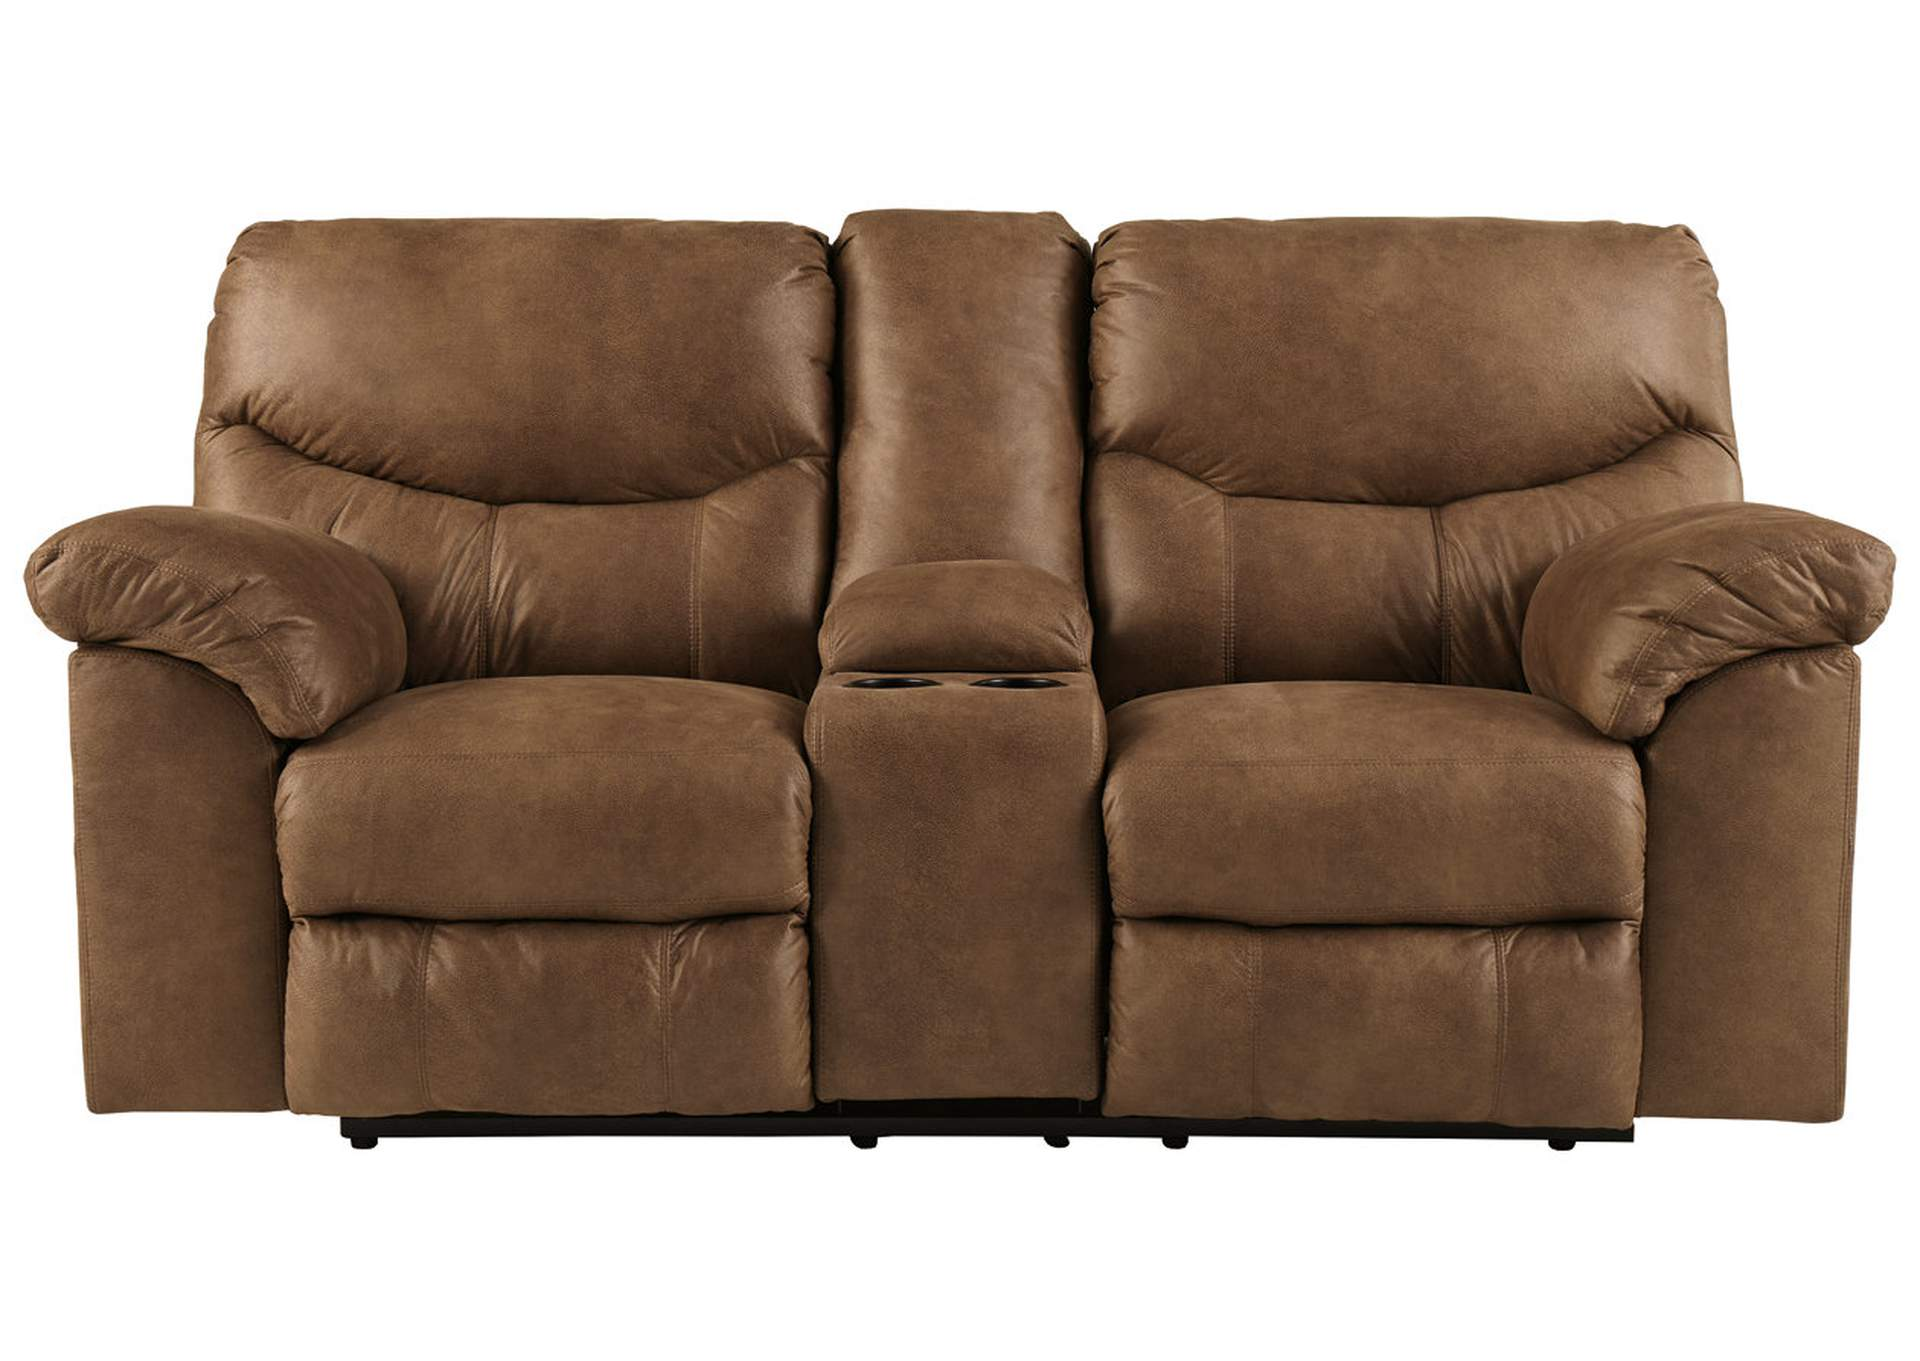 Boxberg Bark Double Power Reclining Loveseat w/Console,Signature Design By Ashley